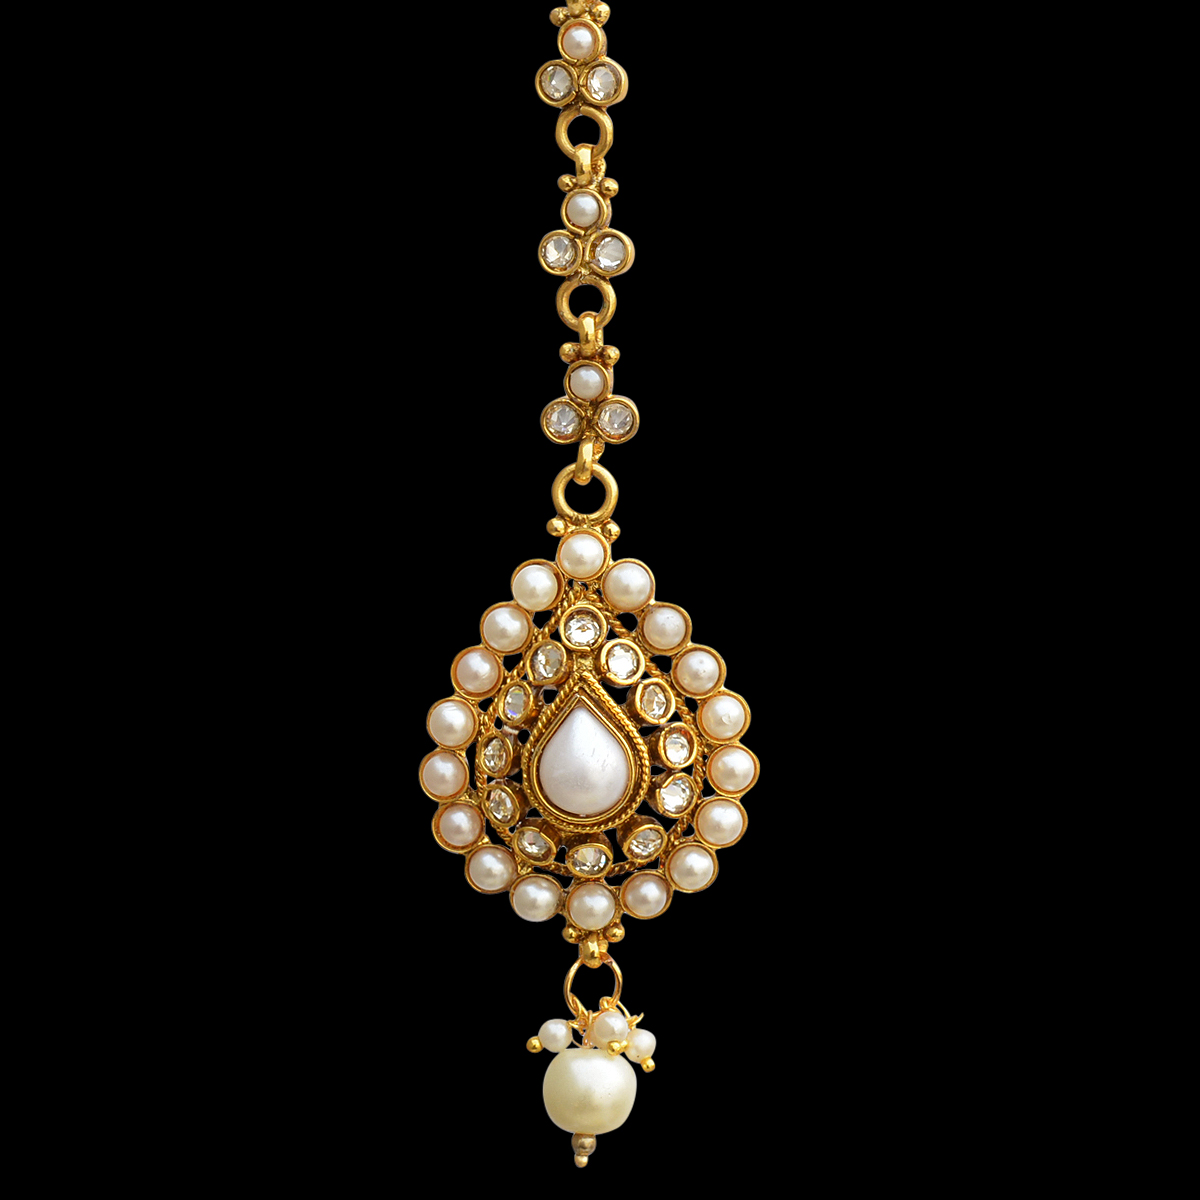 Buy Ethnic Indian Bollywood Hair Jewelry Gold Finish Maang